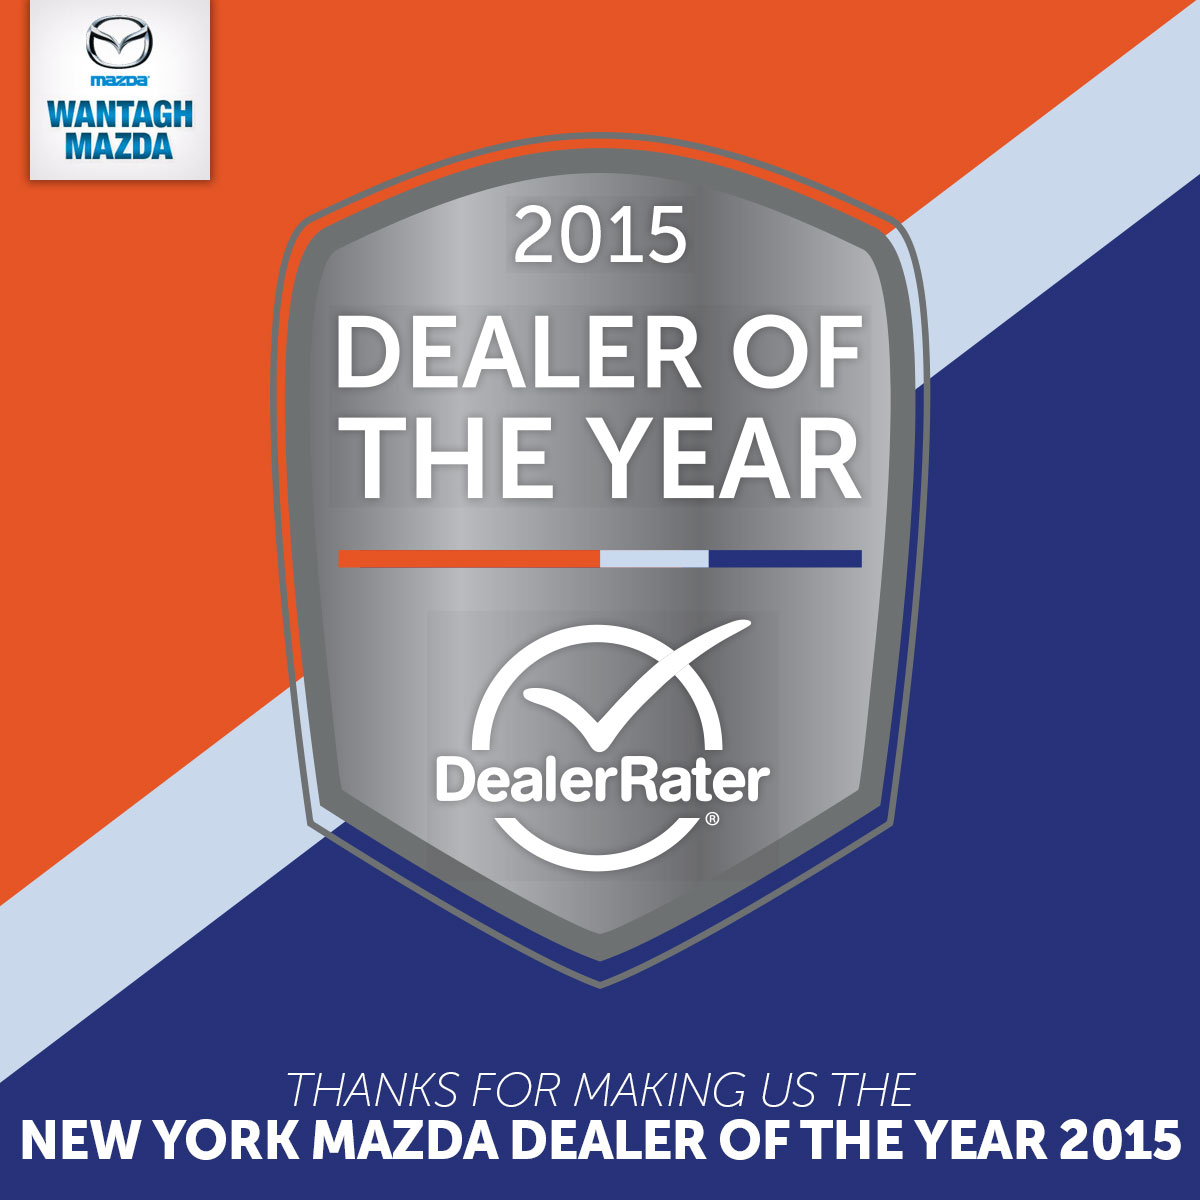 Wantagh Mazda Wins 2015 DealerRater Mazda Dealer of the Year in New York